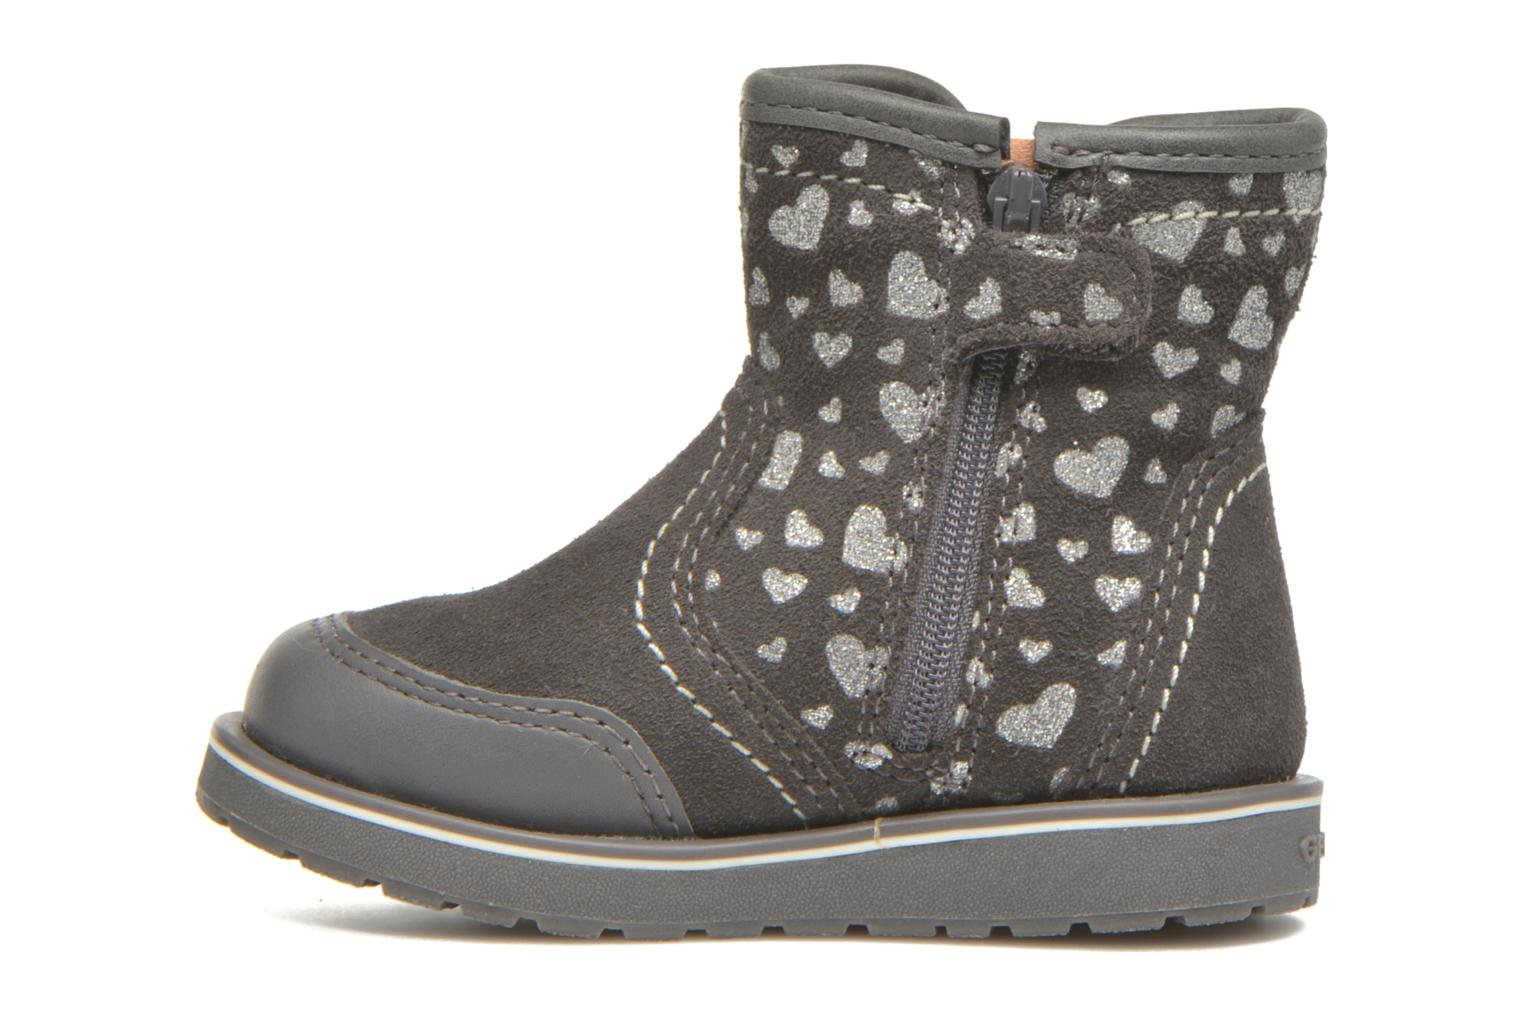 Bottines et boots Geox Baby Noha B5460A Gris vue face